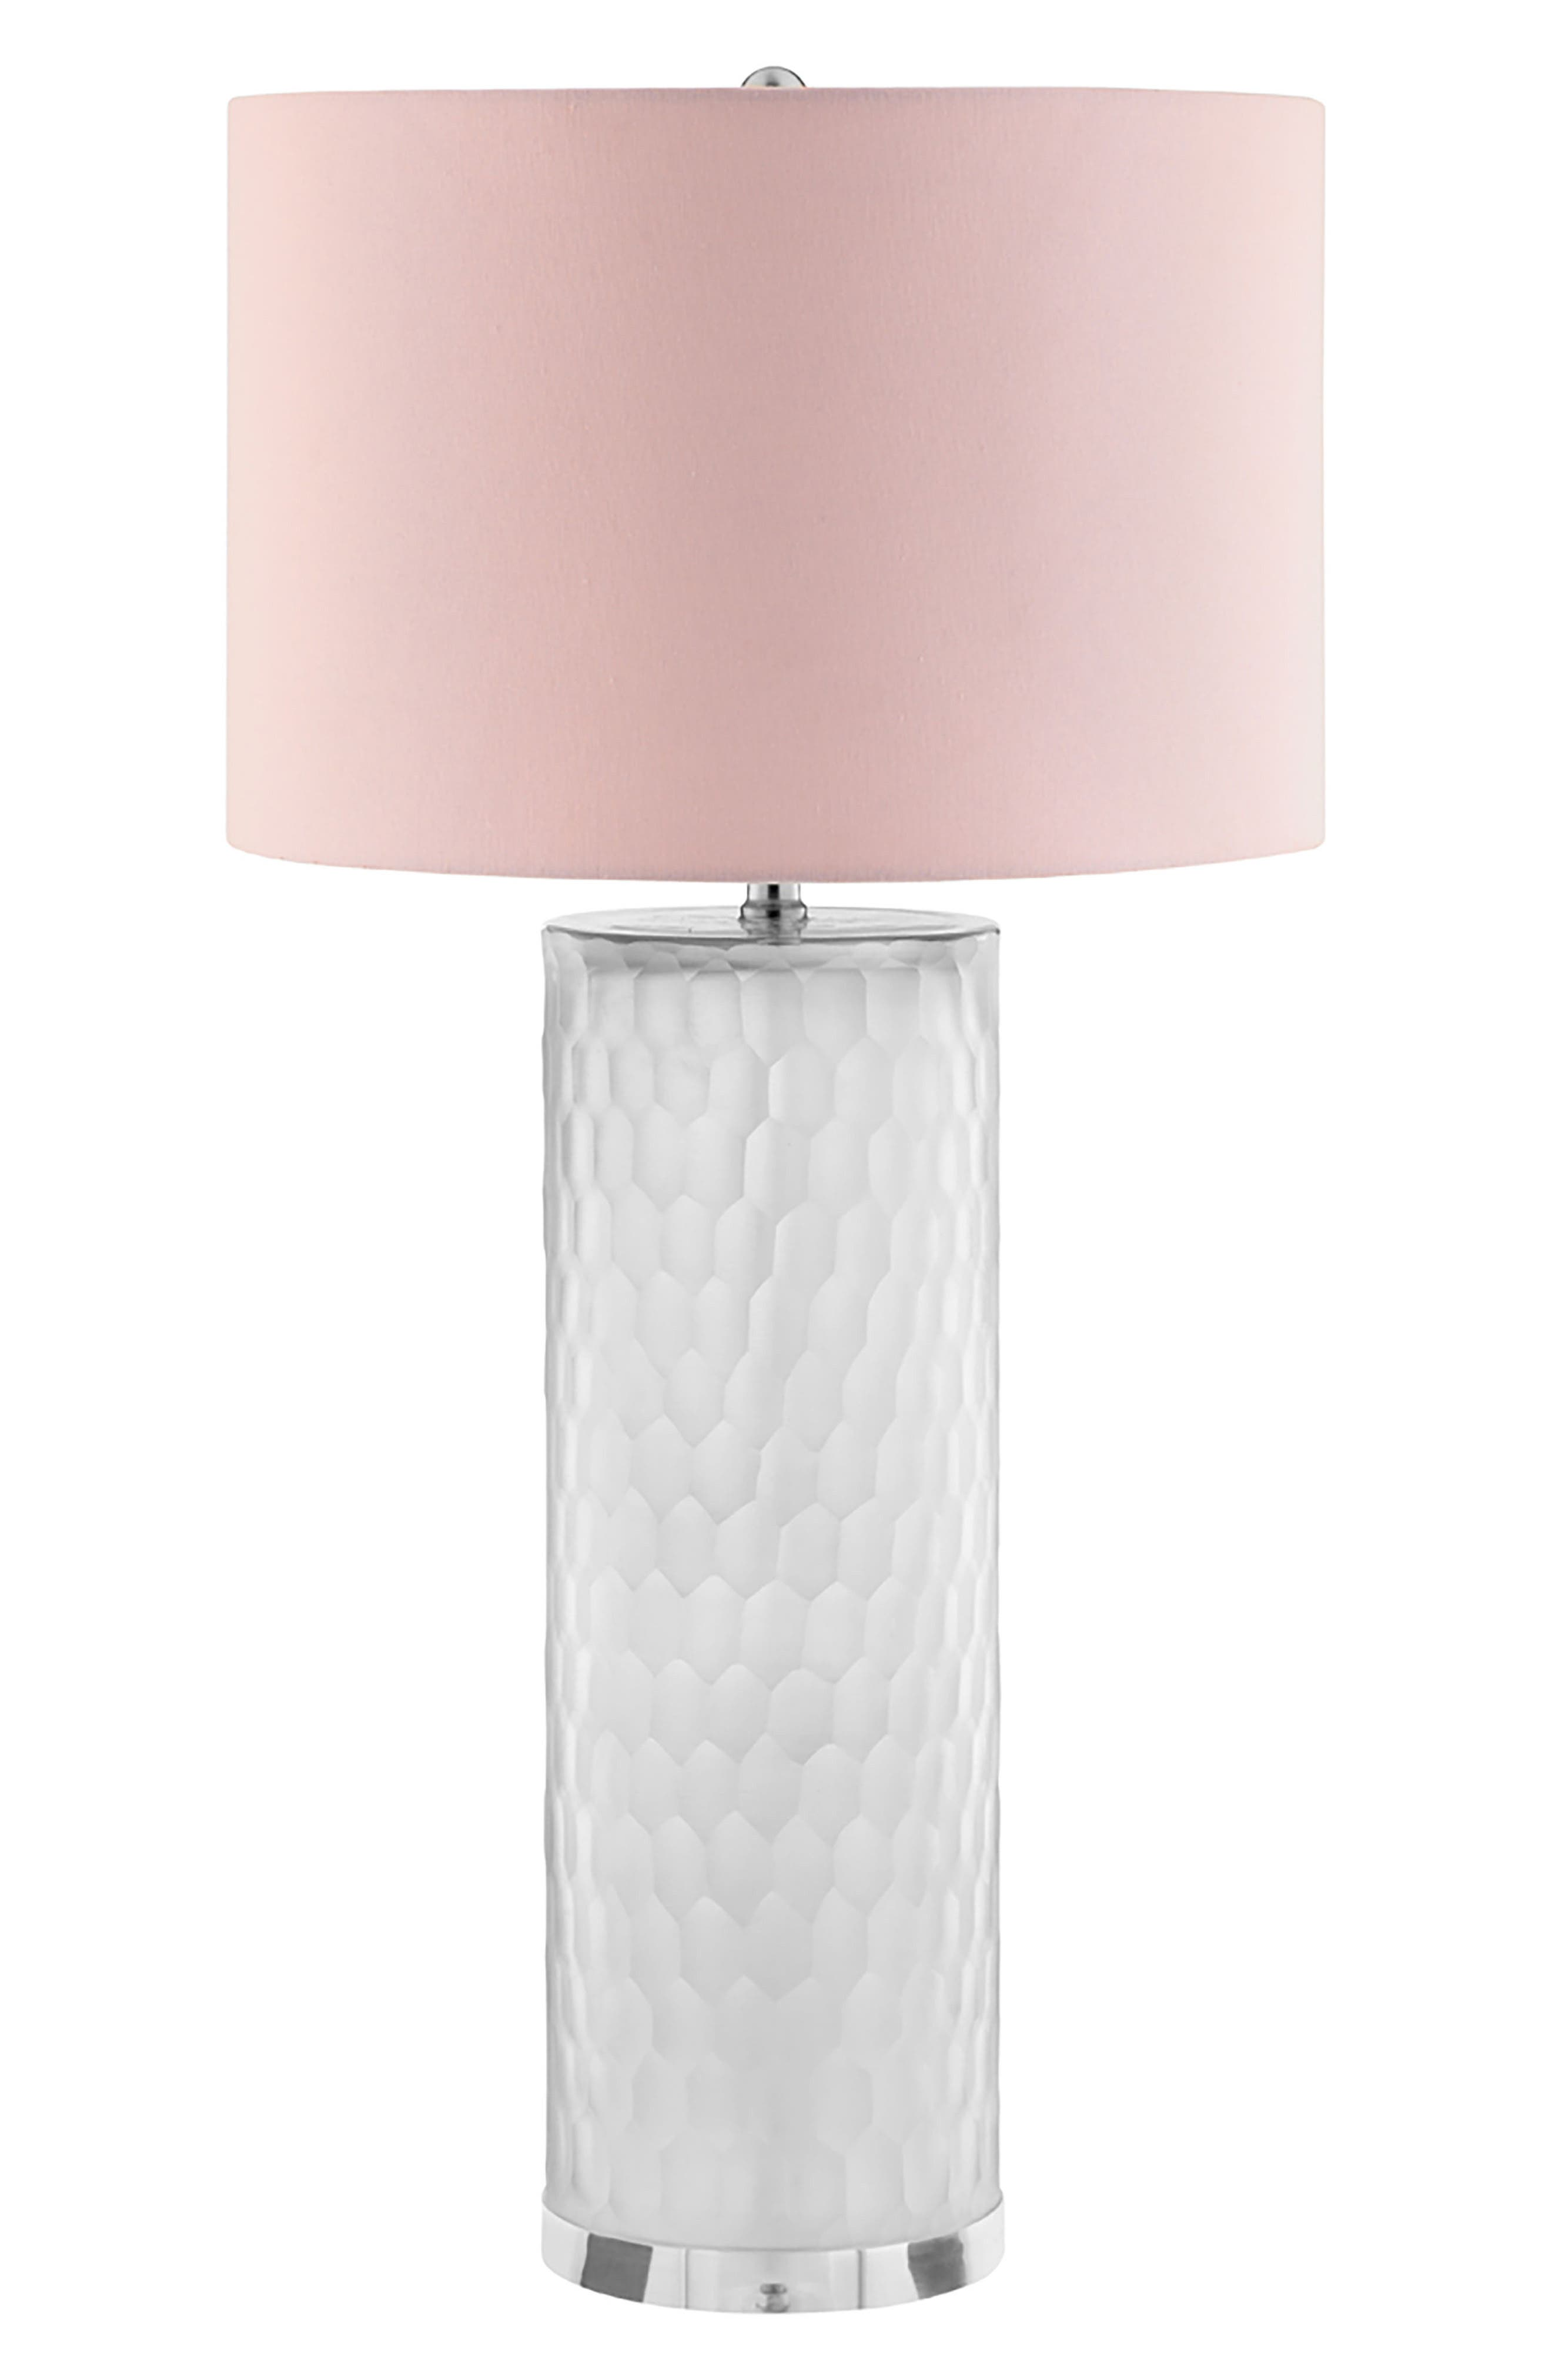 JAlexander Ava Table Lamp,                             Main thumbnail 1, color,                             100